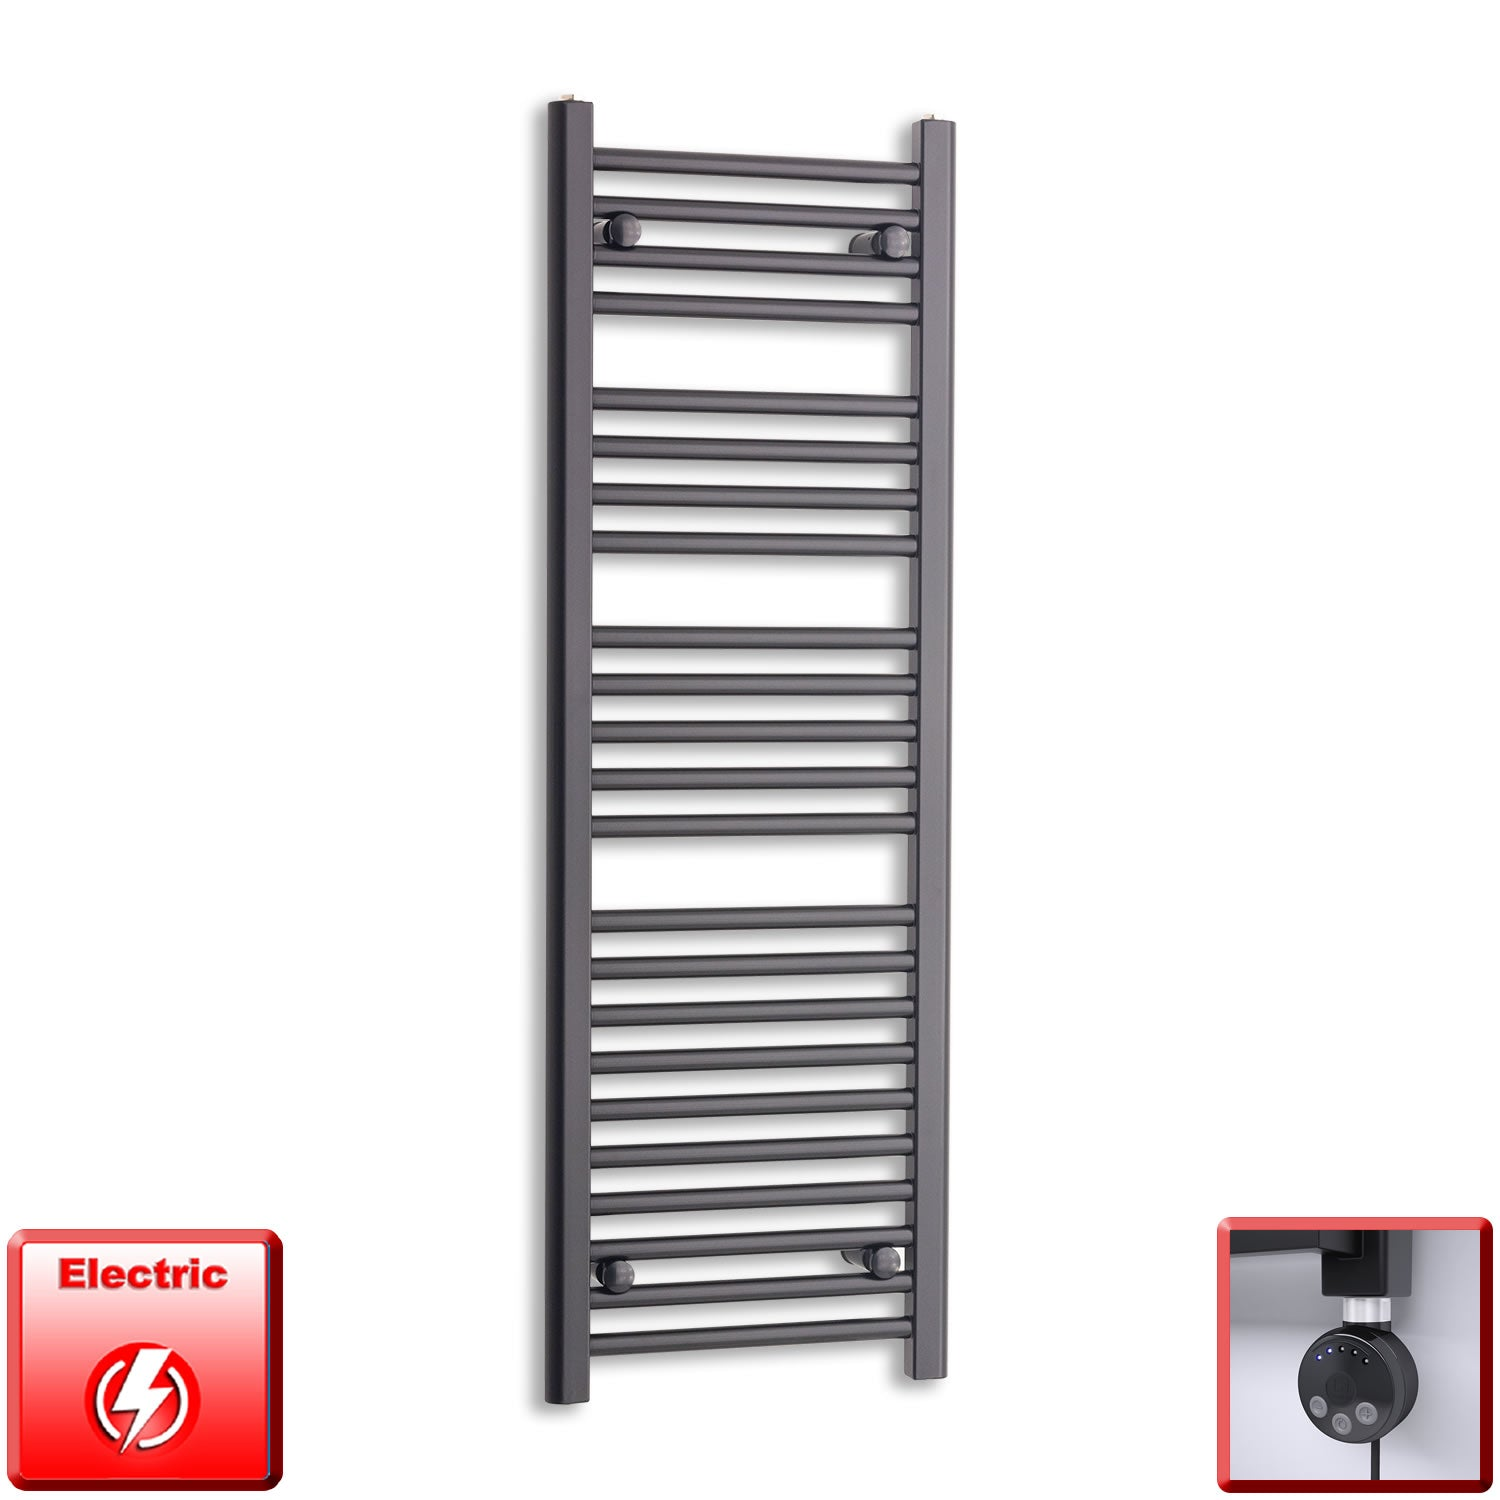 400mm Wide 1200mm High Pre-Filled Black Electric Towel Rail Radiator With Thermostatic MEG Element